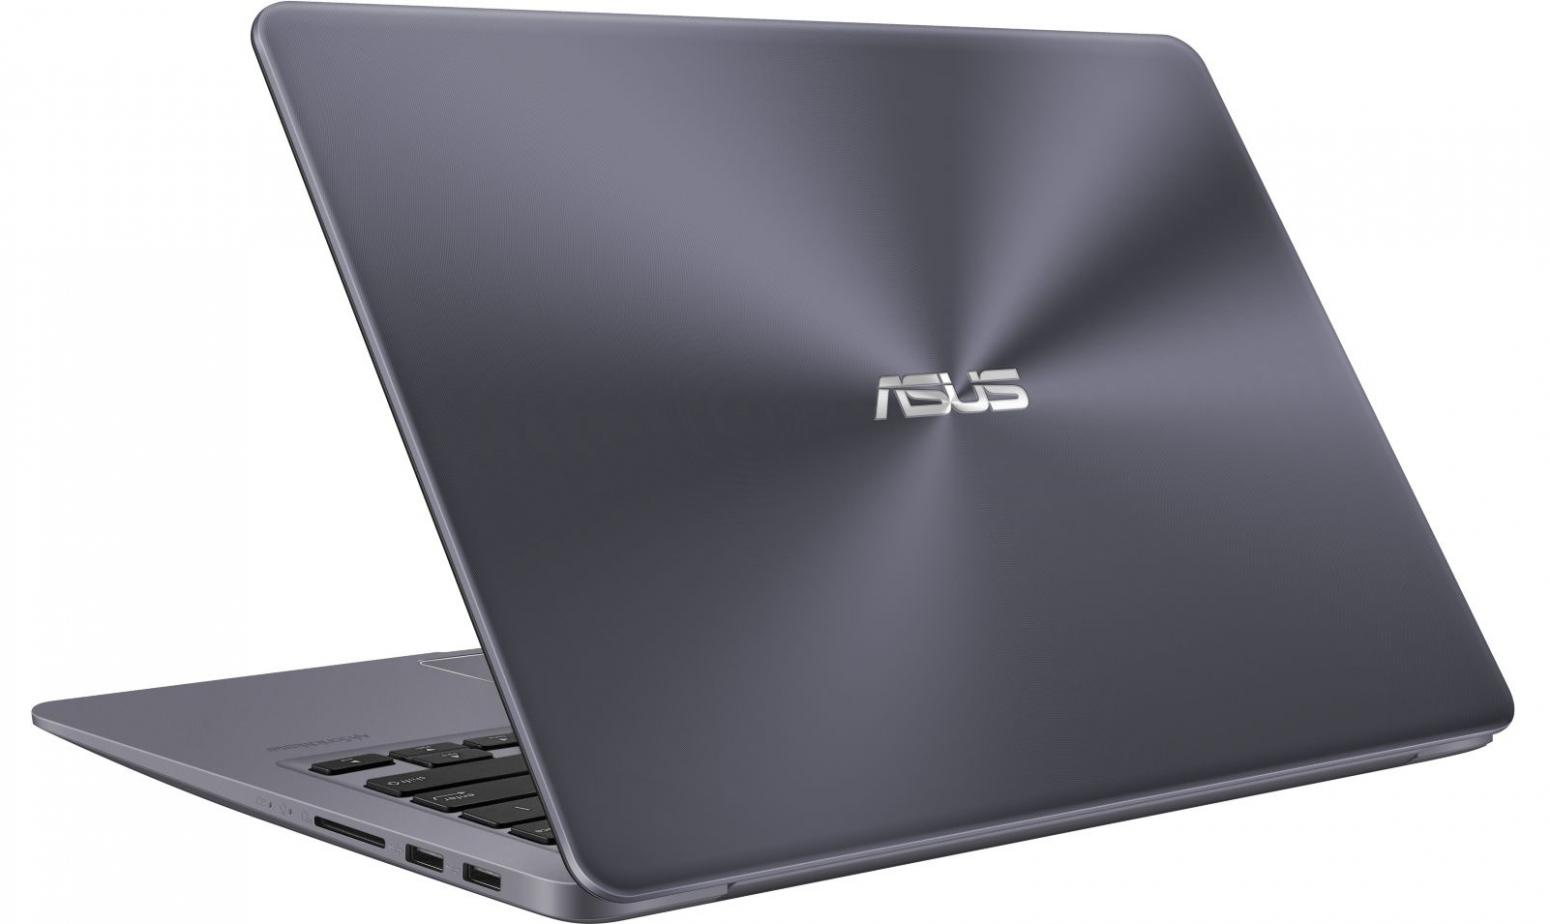 asus vivobook s401ua eb308t argent les meilleurs prix. Black Bedroom Furniture Sets. Home Design Ideas